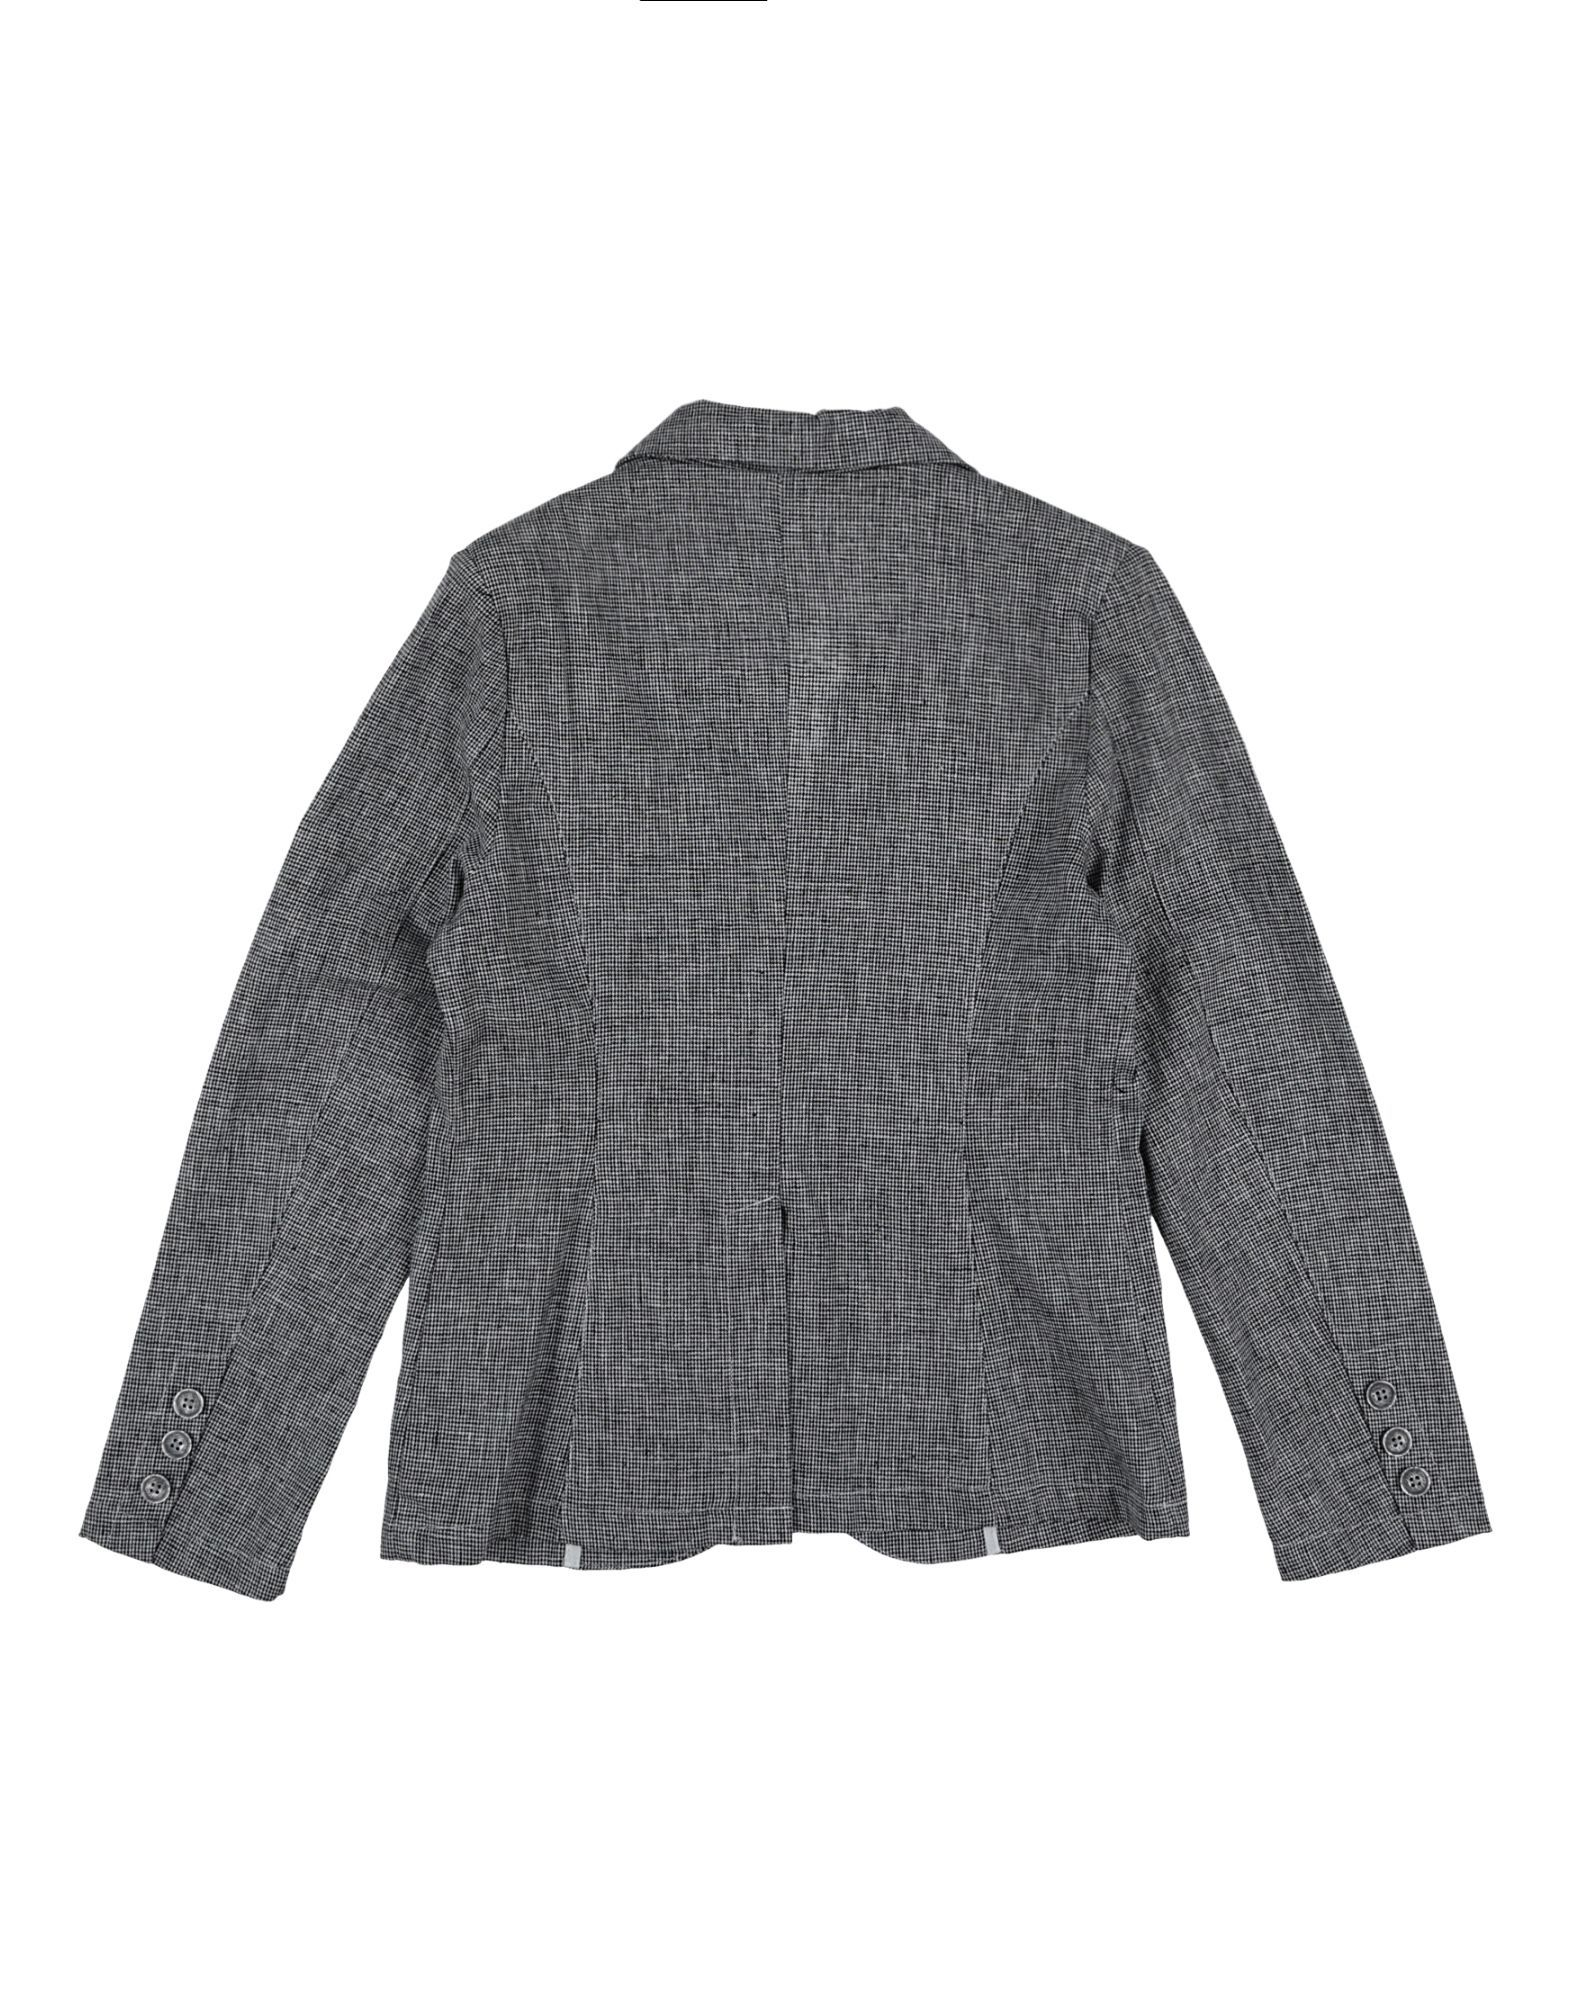 SUITS AND JACKETS Ronnie Kay Black Boy Linen